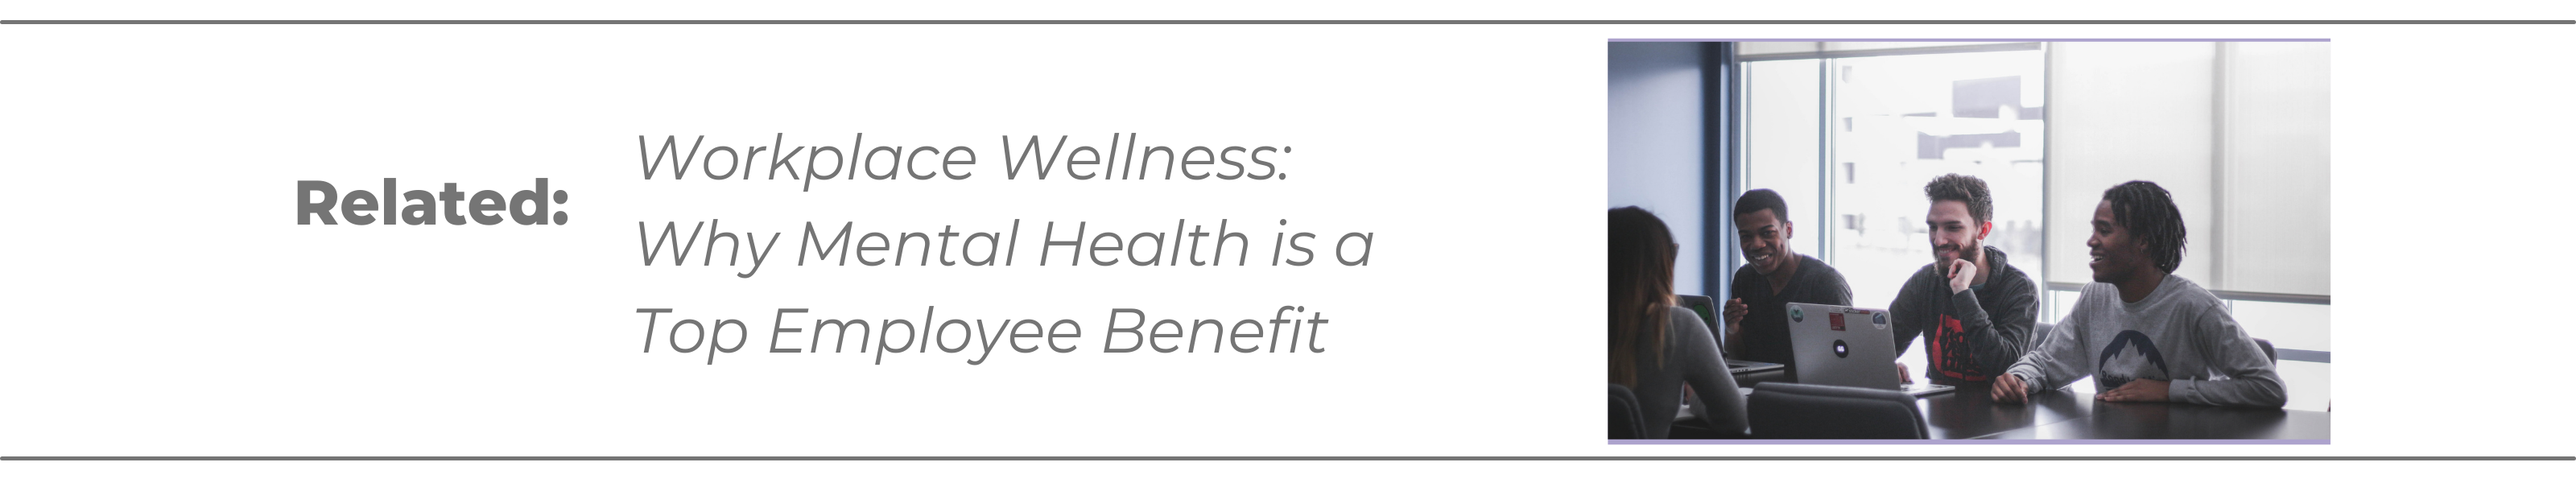 related blog - workplace wellness benefits